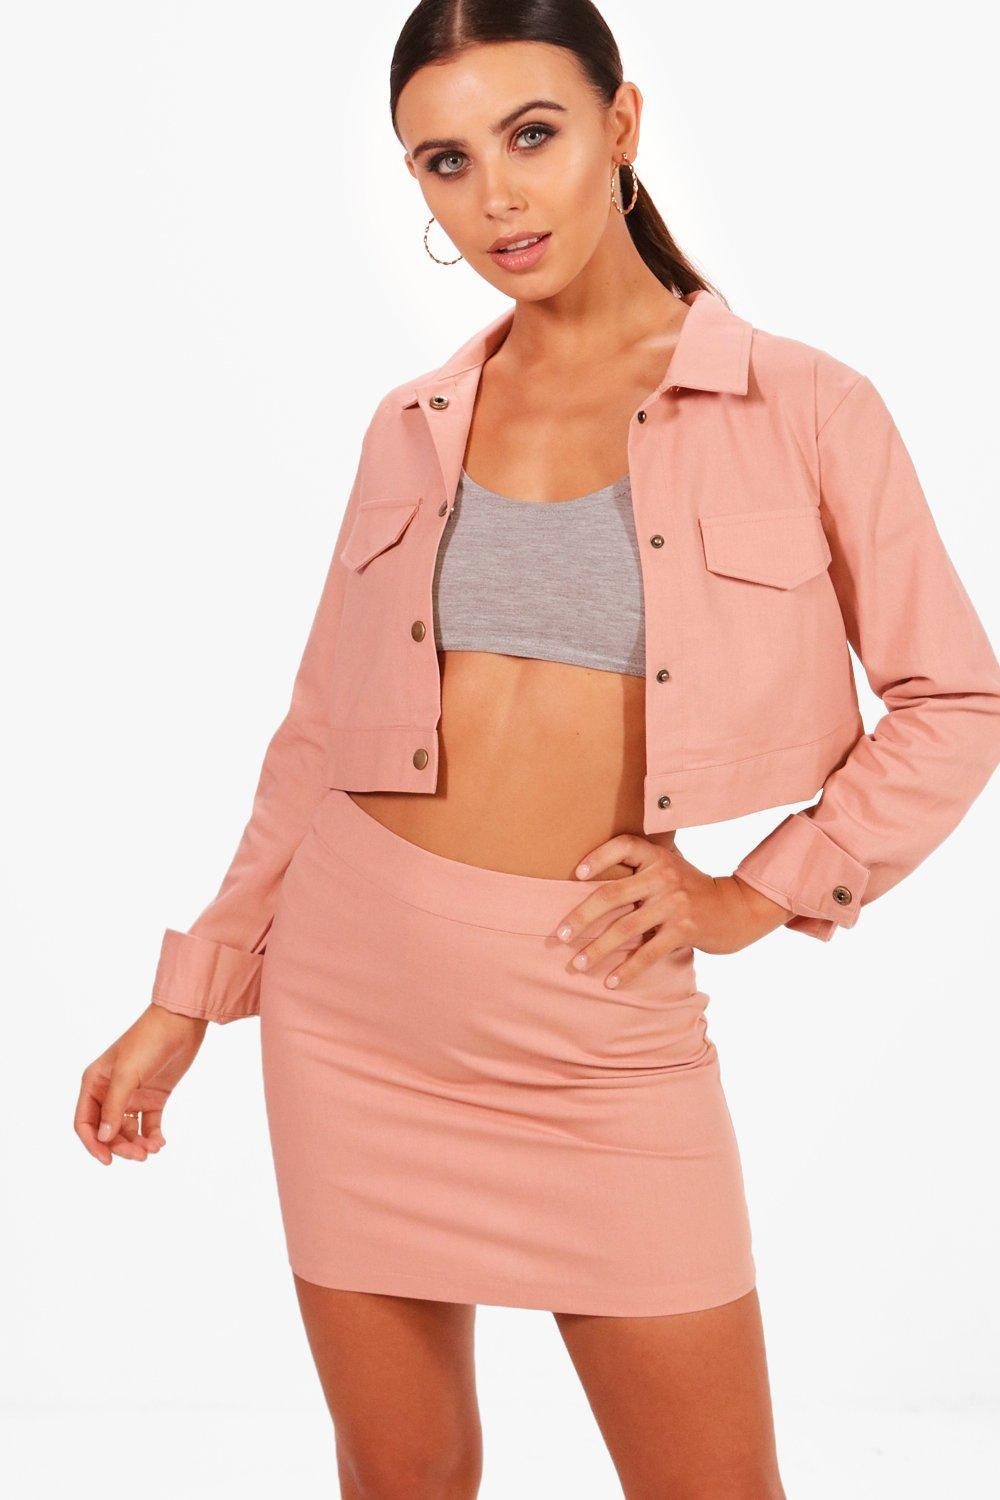 e797096523ef Boohoo Petite Cropped Jacket & Skirt Co-ord in Pink - Lyst